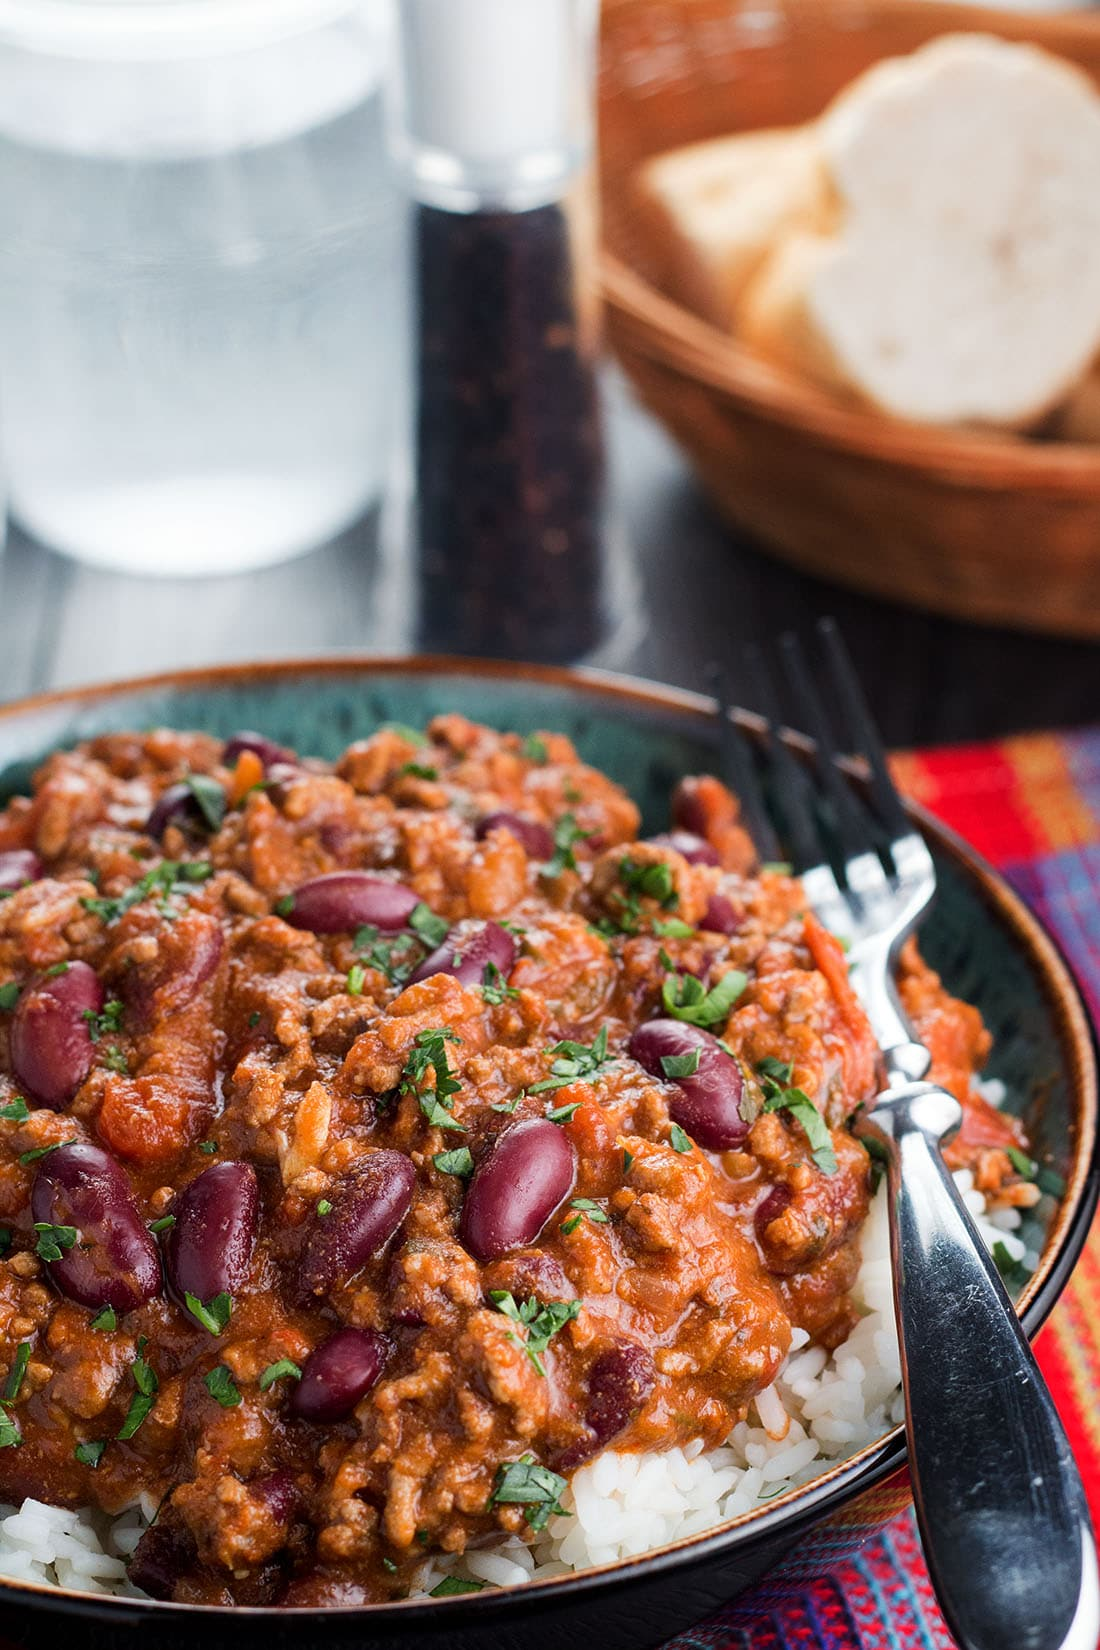 Classic Chili Con Carne - Delicious comfort food at it's finest!